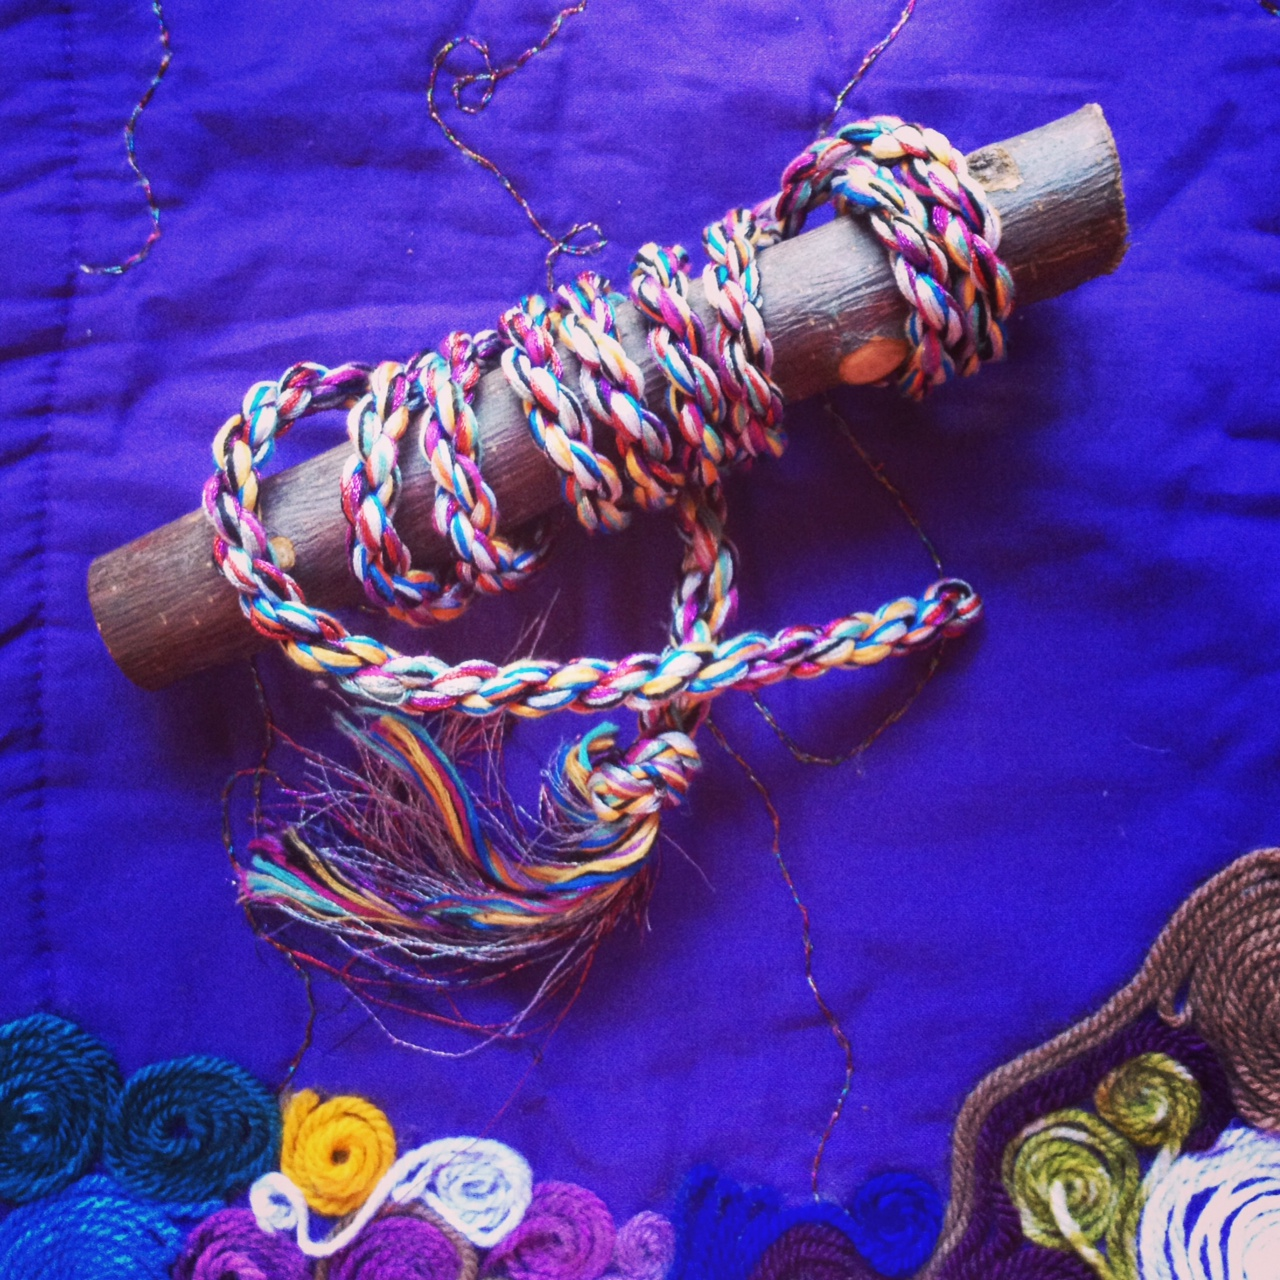 How to Make a Ceremony Stick   Hollie B. Lunation   Creating Sacred Spaces